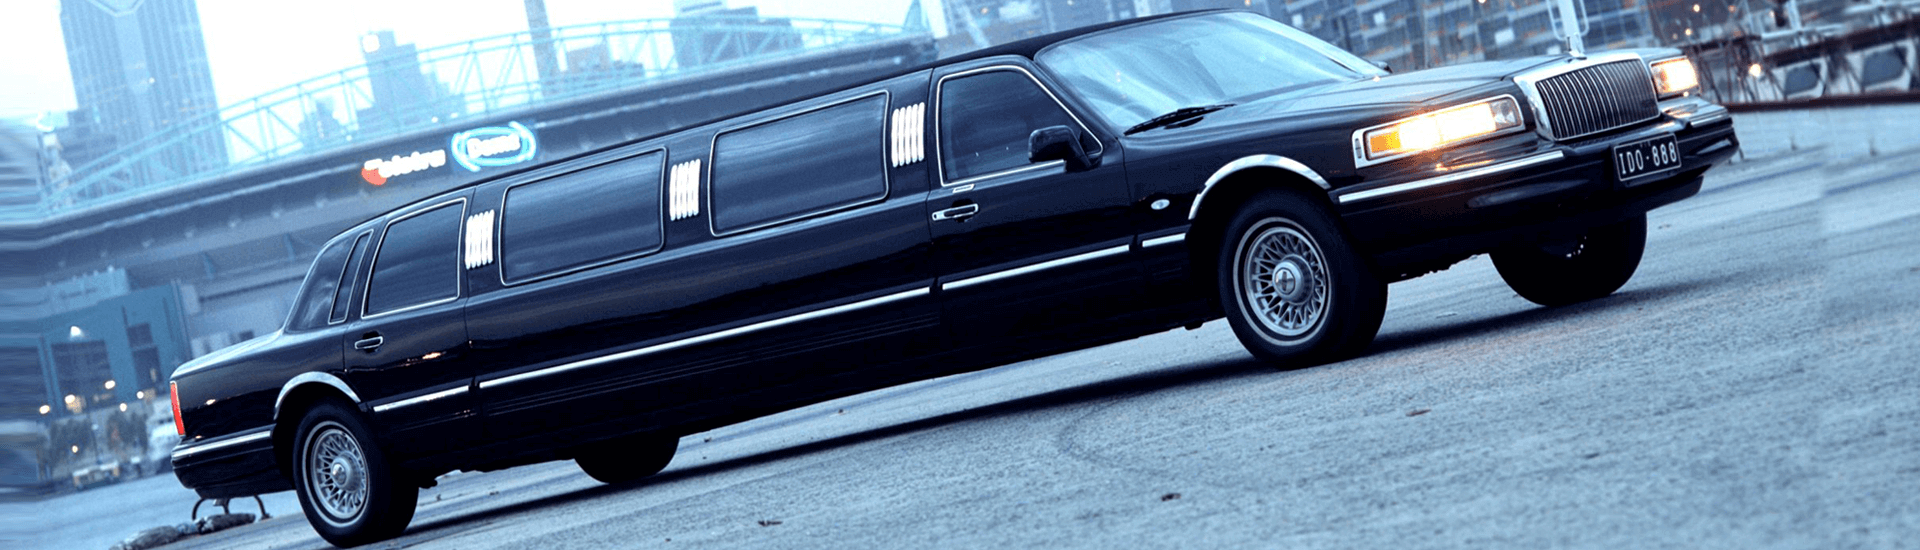 The Tool to Streamline On-demand Limo Business